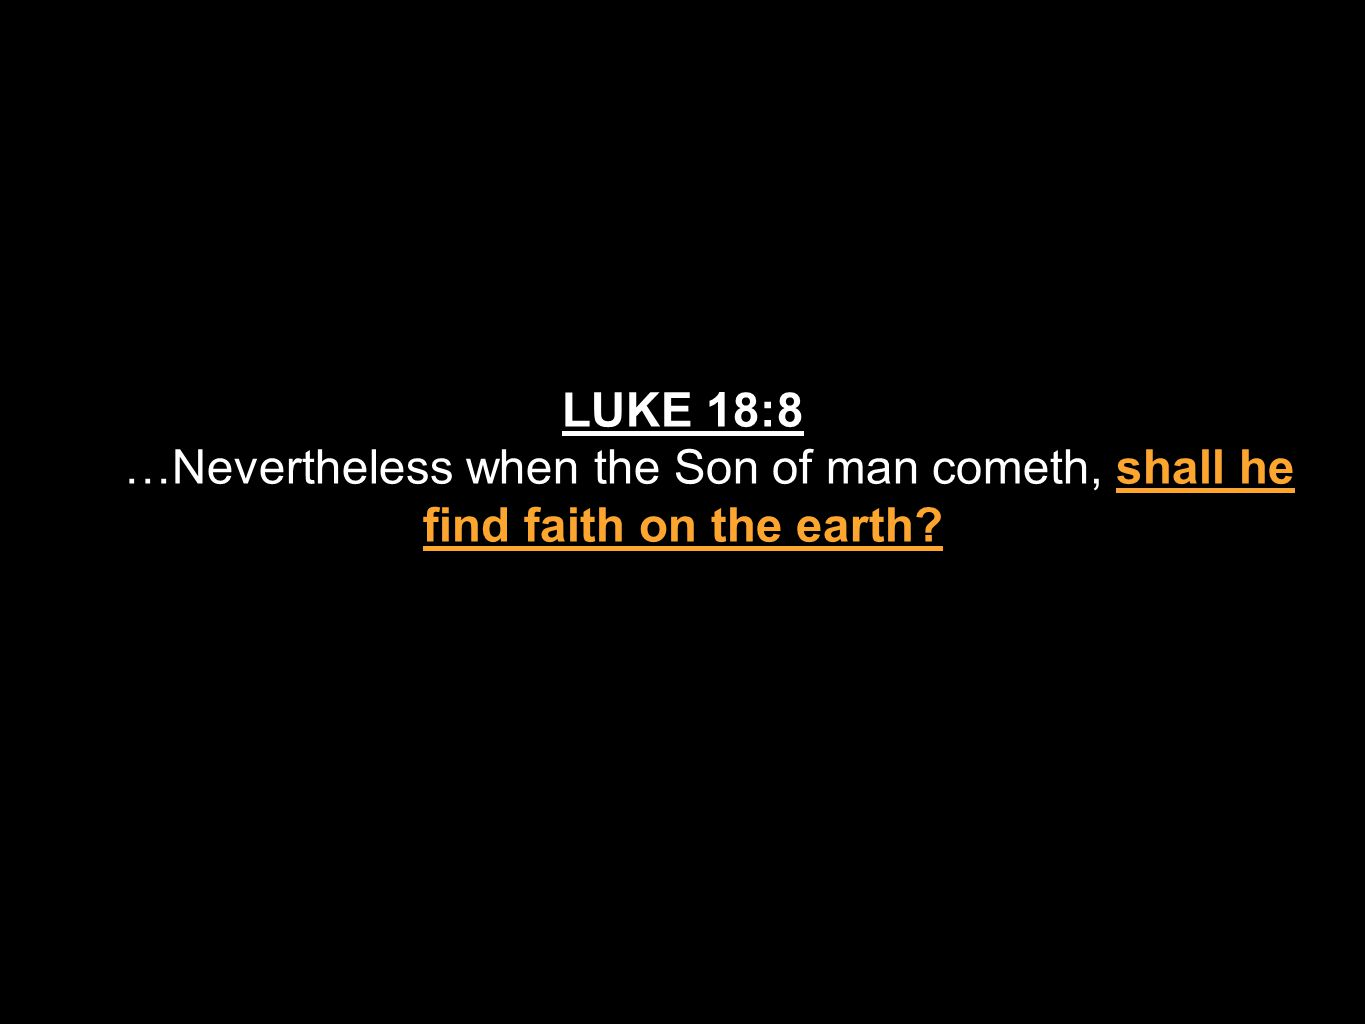 LUKE 18:8 …Nevertheless when the Son of man cometh, shall he find faith on the earth